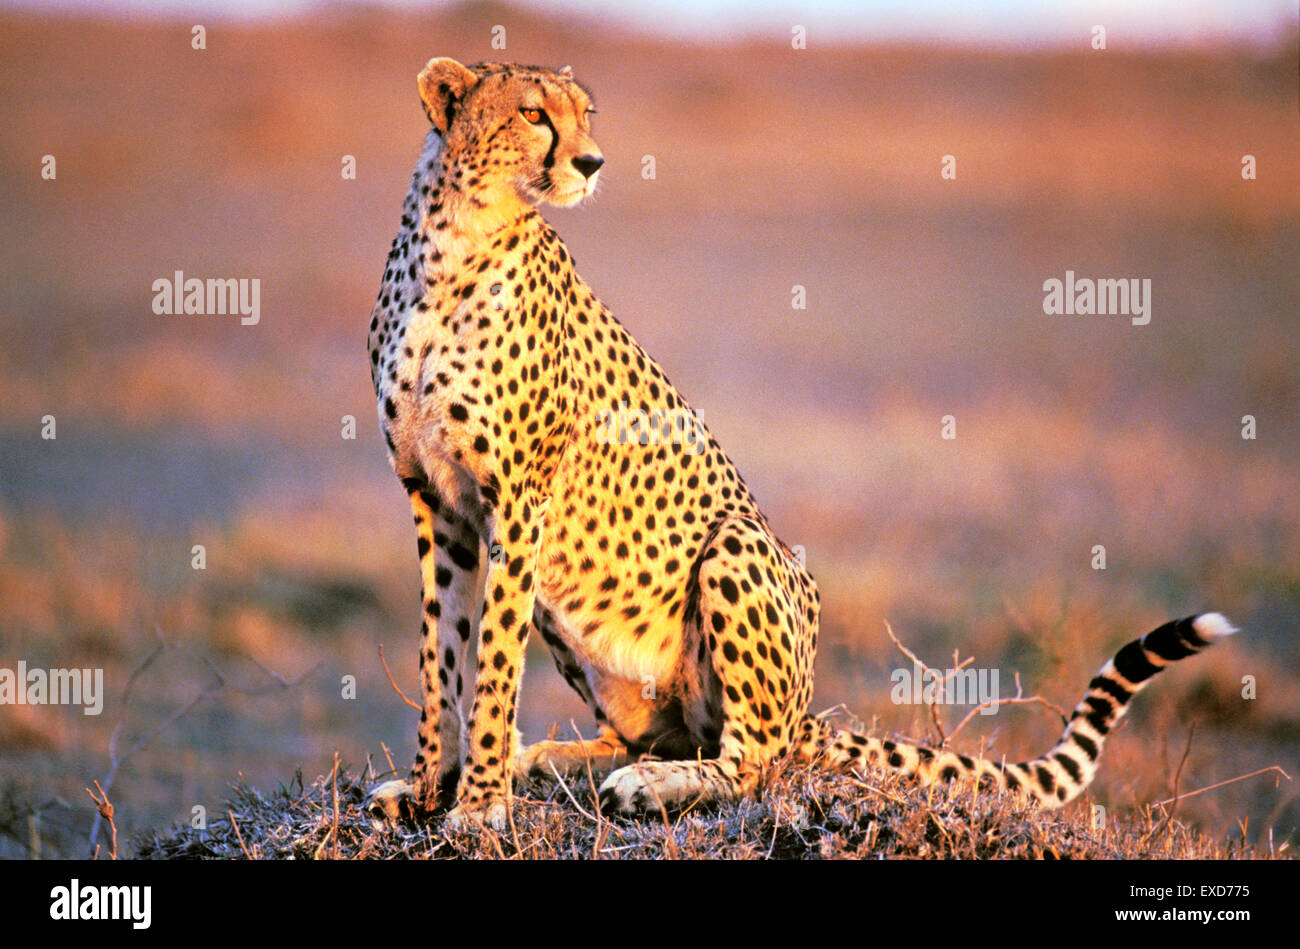 Cheetah sitting in Savannah in late afternoon sunlight - Stock Image